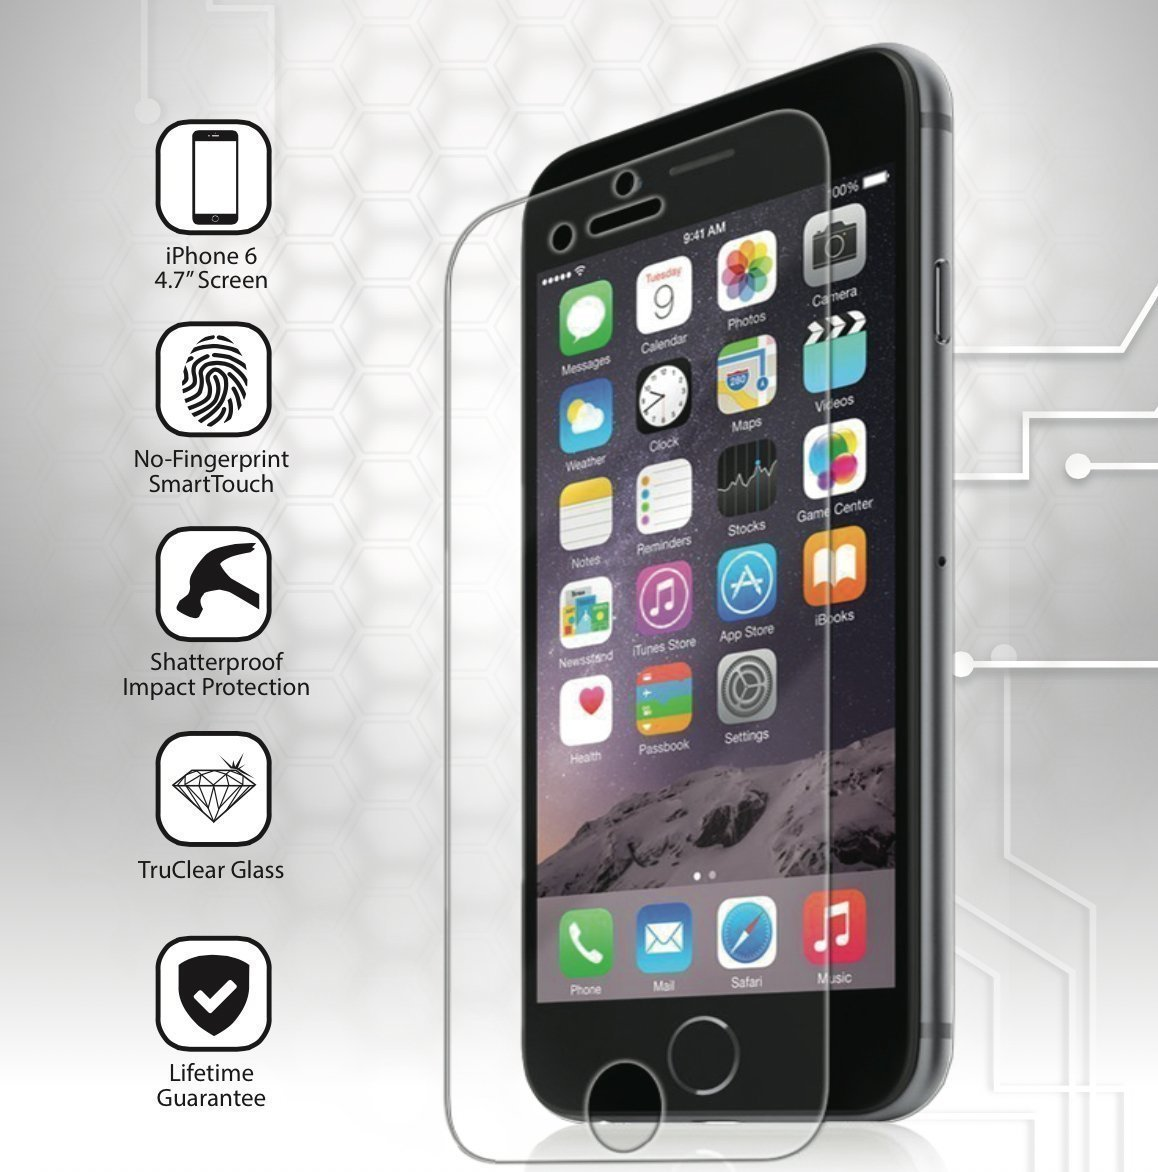 Tempered glass screen protector for iPhone 6/6 Plus makes sure you won't have to replace a cracked screen